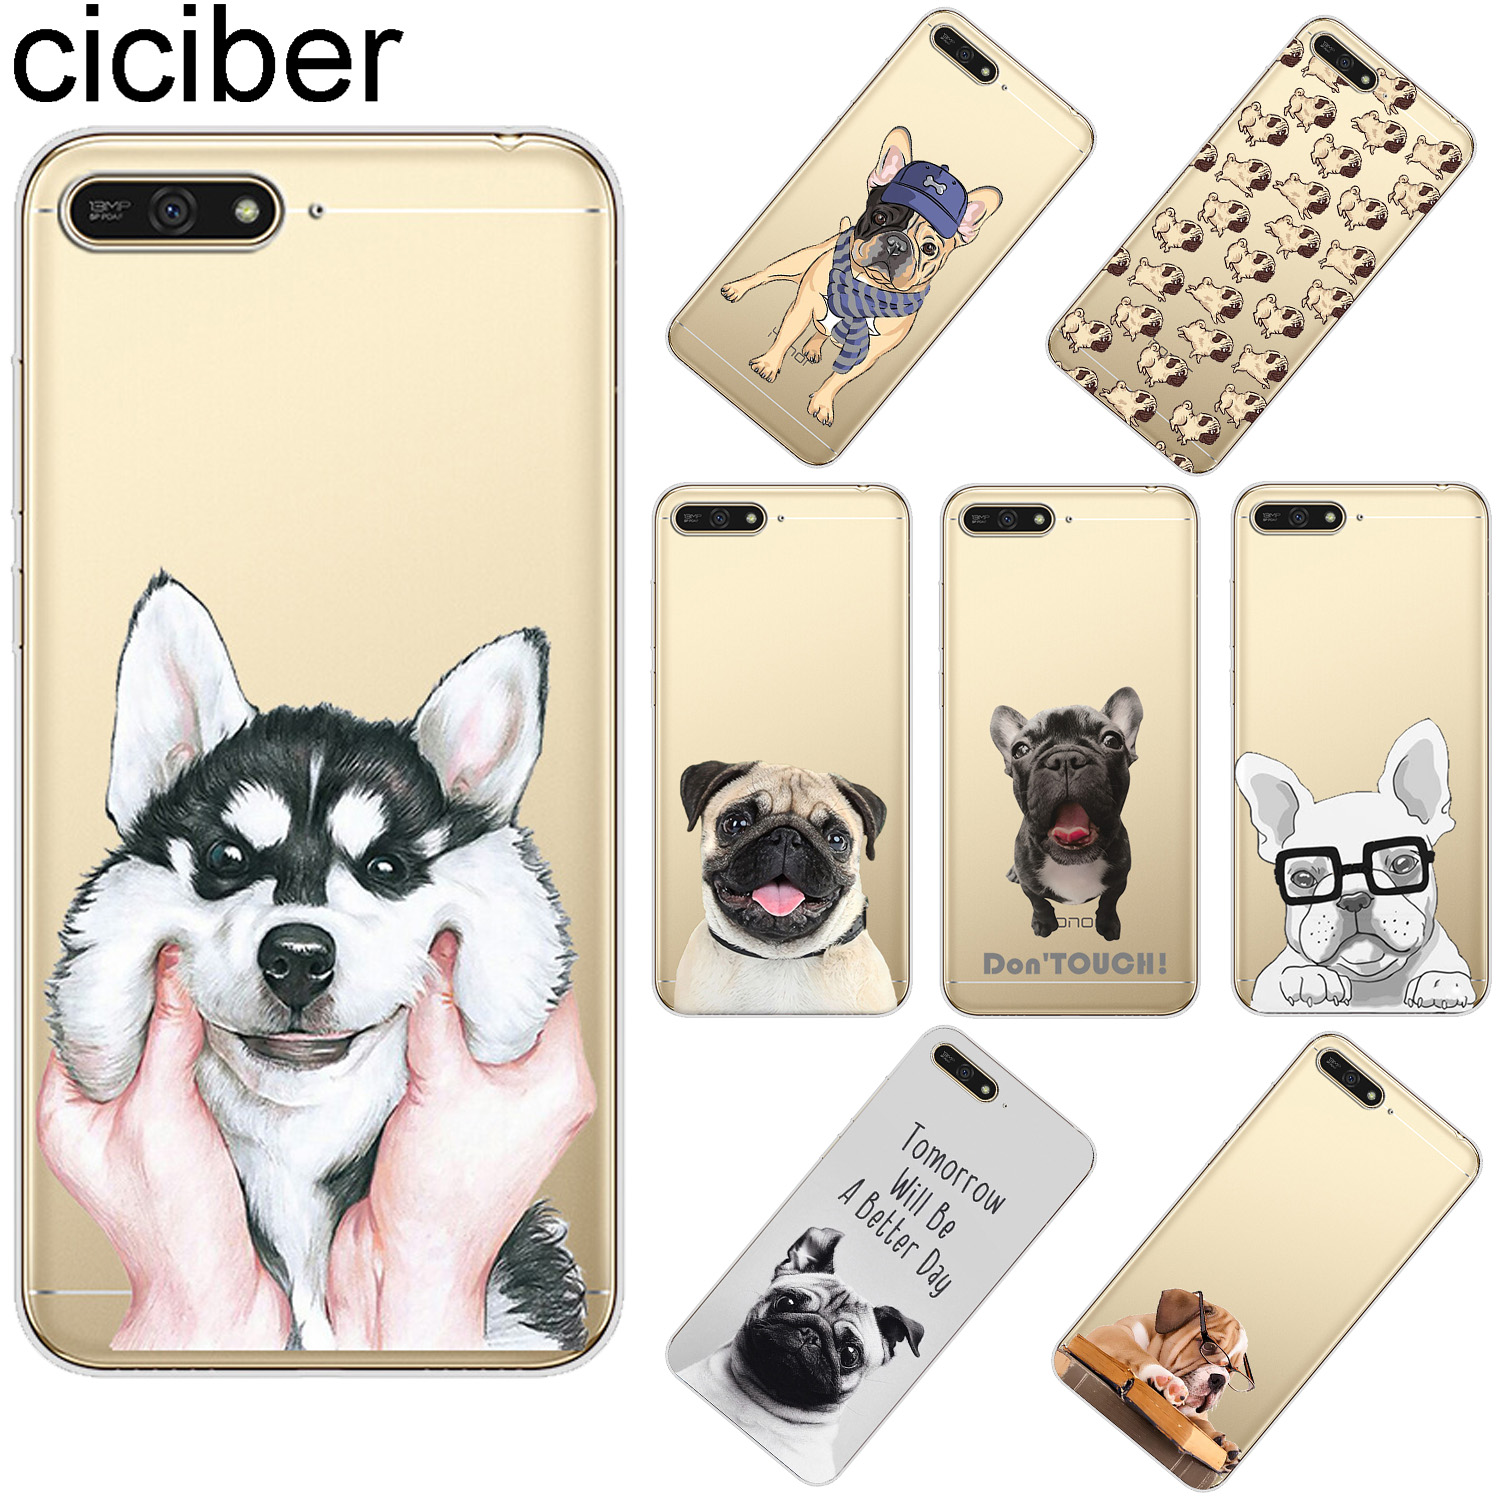 ciciber For Huawei Y9 Y7 Y6 Y5 Y3 Prime Pro 2019 2018 2017 Clear Soft Silicone TPU Phone Cases Cute Funny Pug Dog Fundas Coque in Fitted Cases from Cellphones Telecommunications